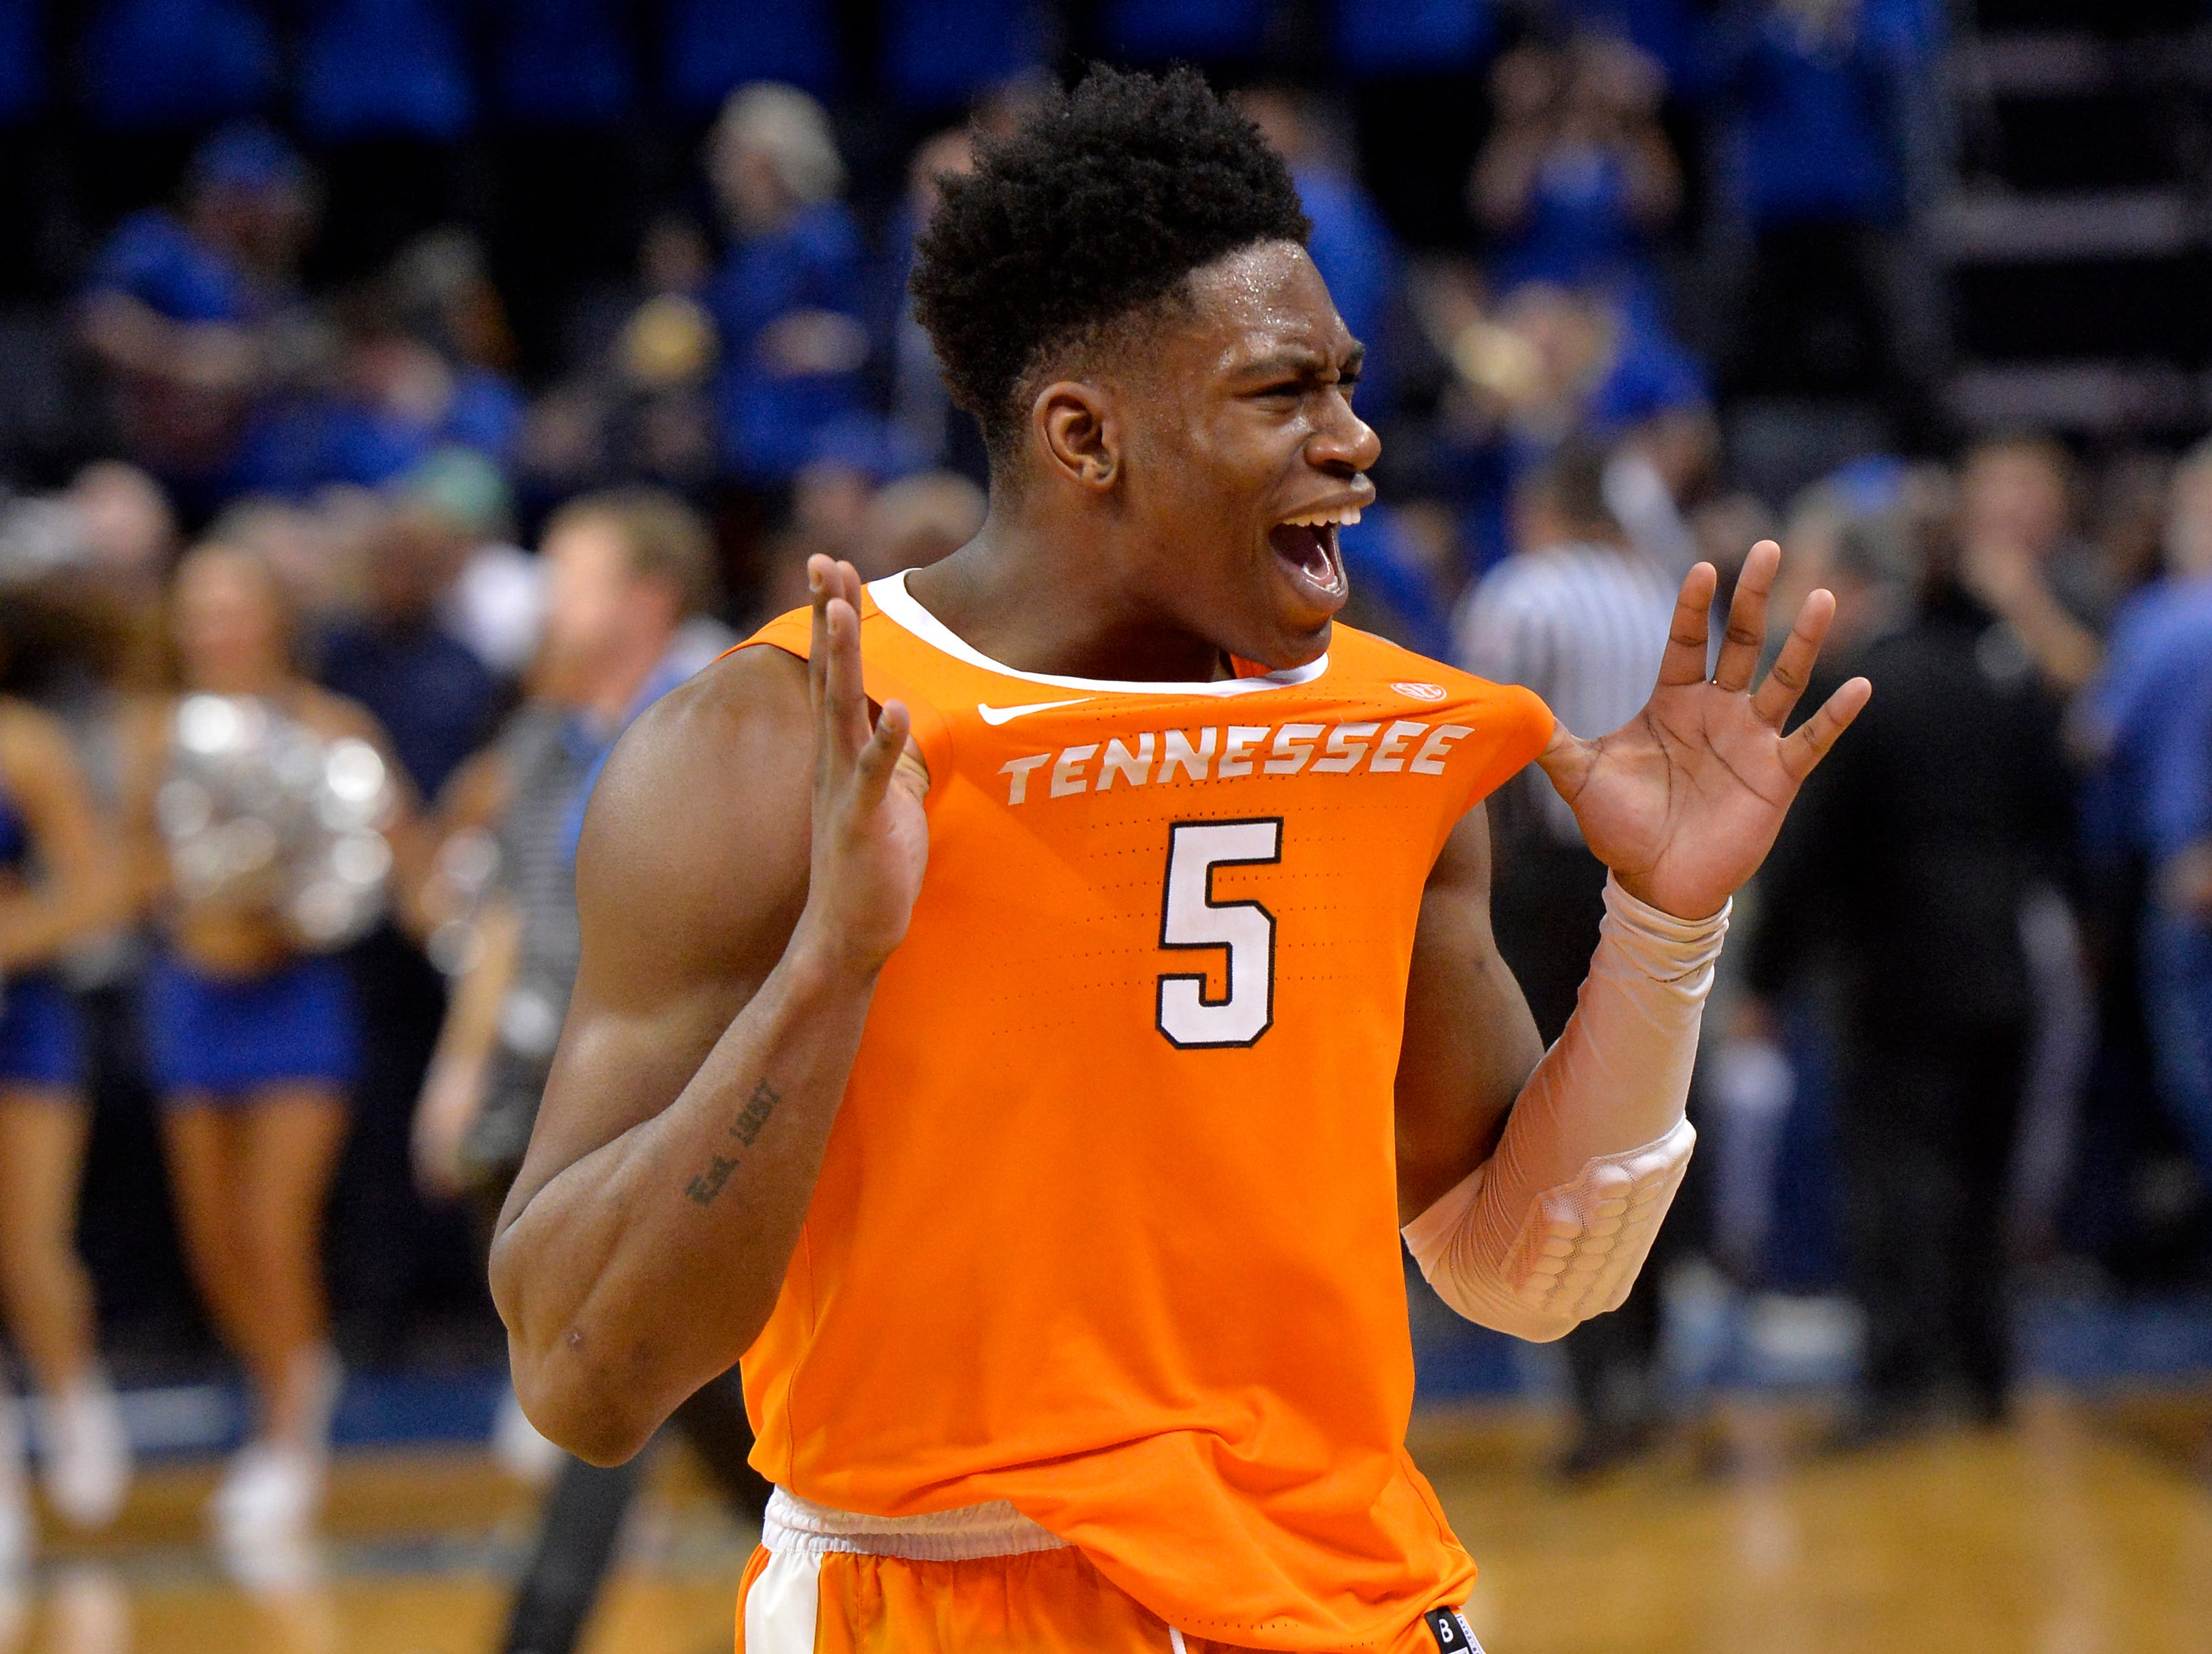 Tennessee guard Admiral Schofield (5) gestures to Memphis fans after an NCAA college basketball game against Memphis Saturday, Dec. 15, 2018, in Memphis, Tenn. Tennessee defeated Memphis 102-92.